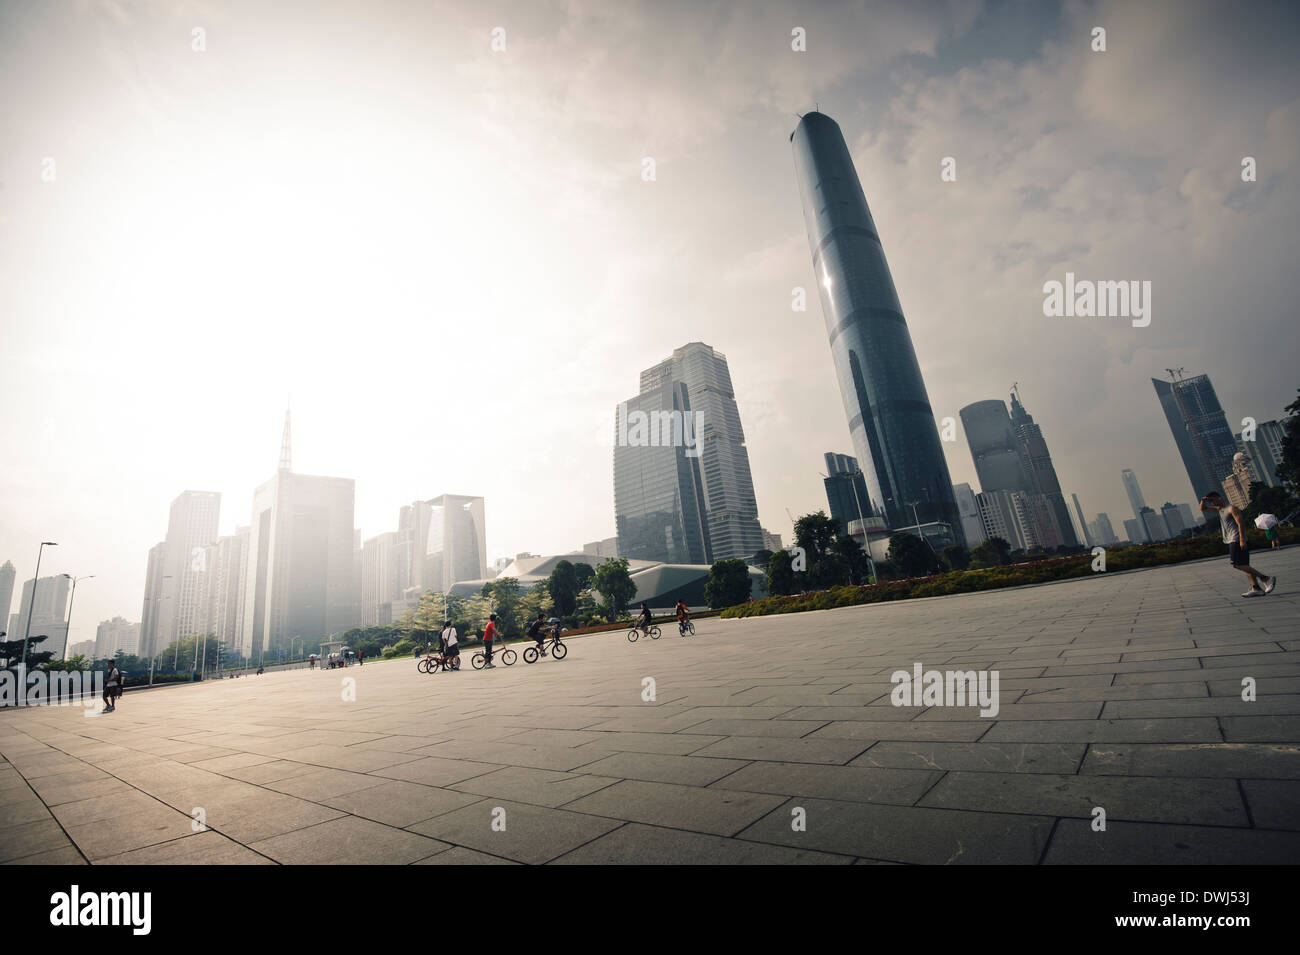 Guangzhou commercial area with famous skyscraper - Stock Image